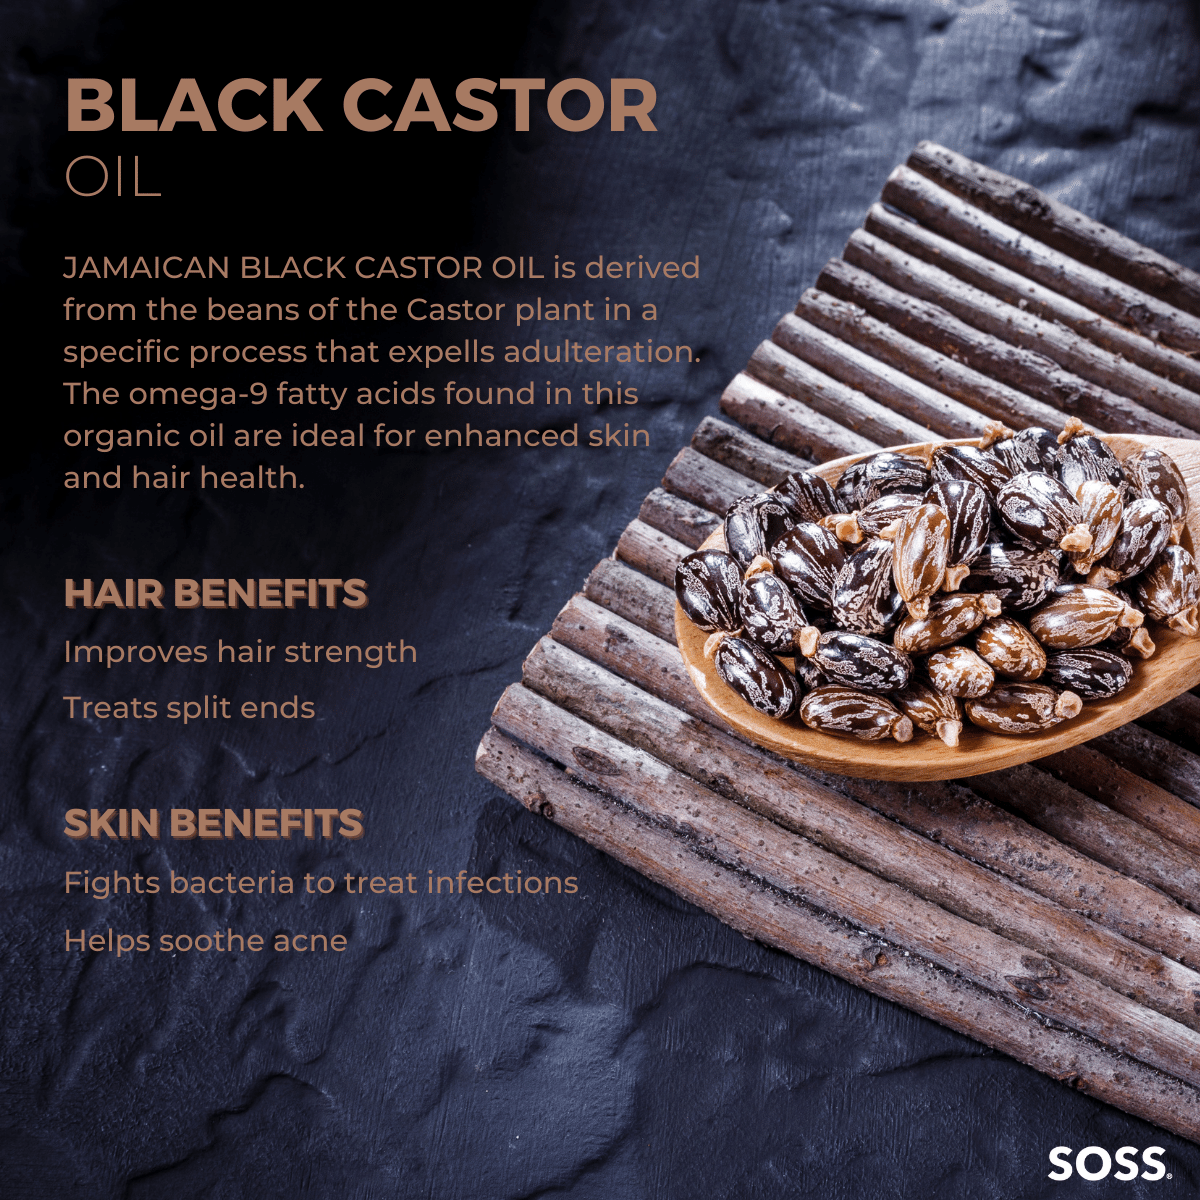 Jamaican Black Castor Oil is used for optimum hair growth and skin moisture.